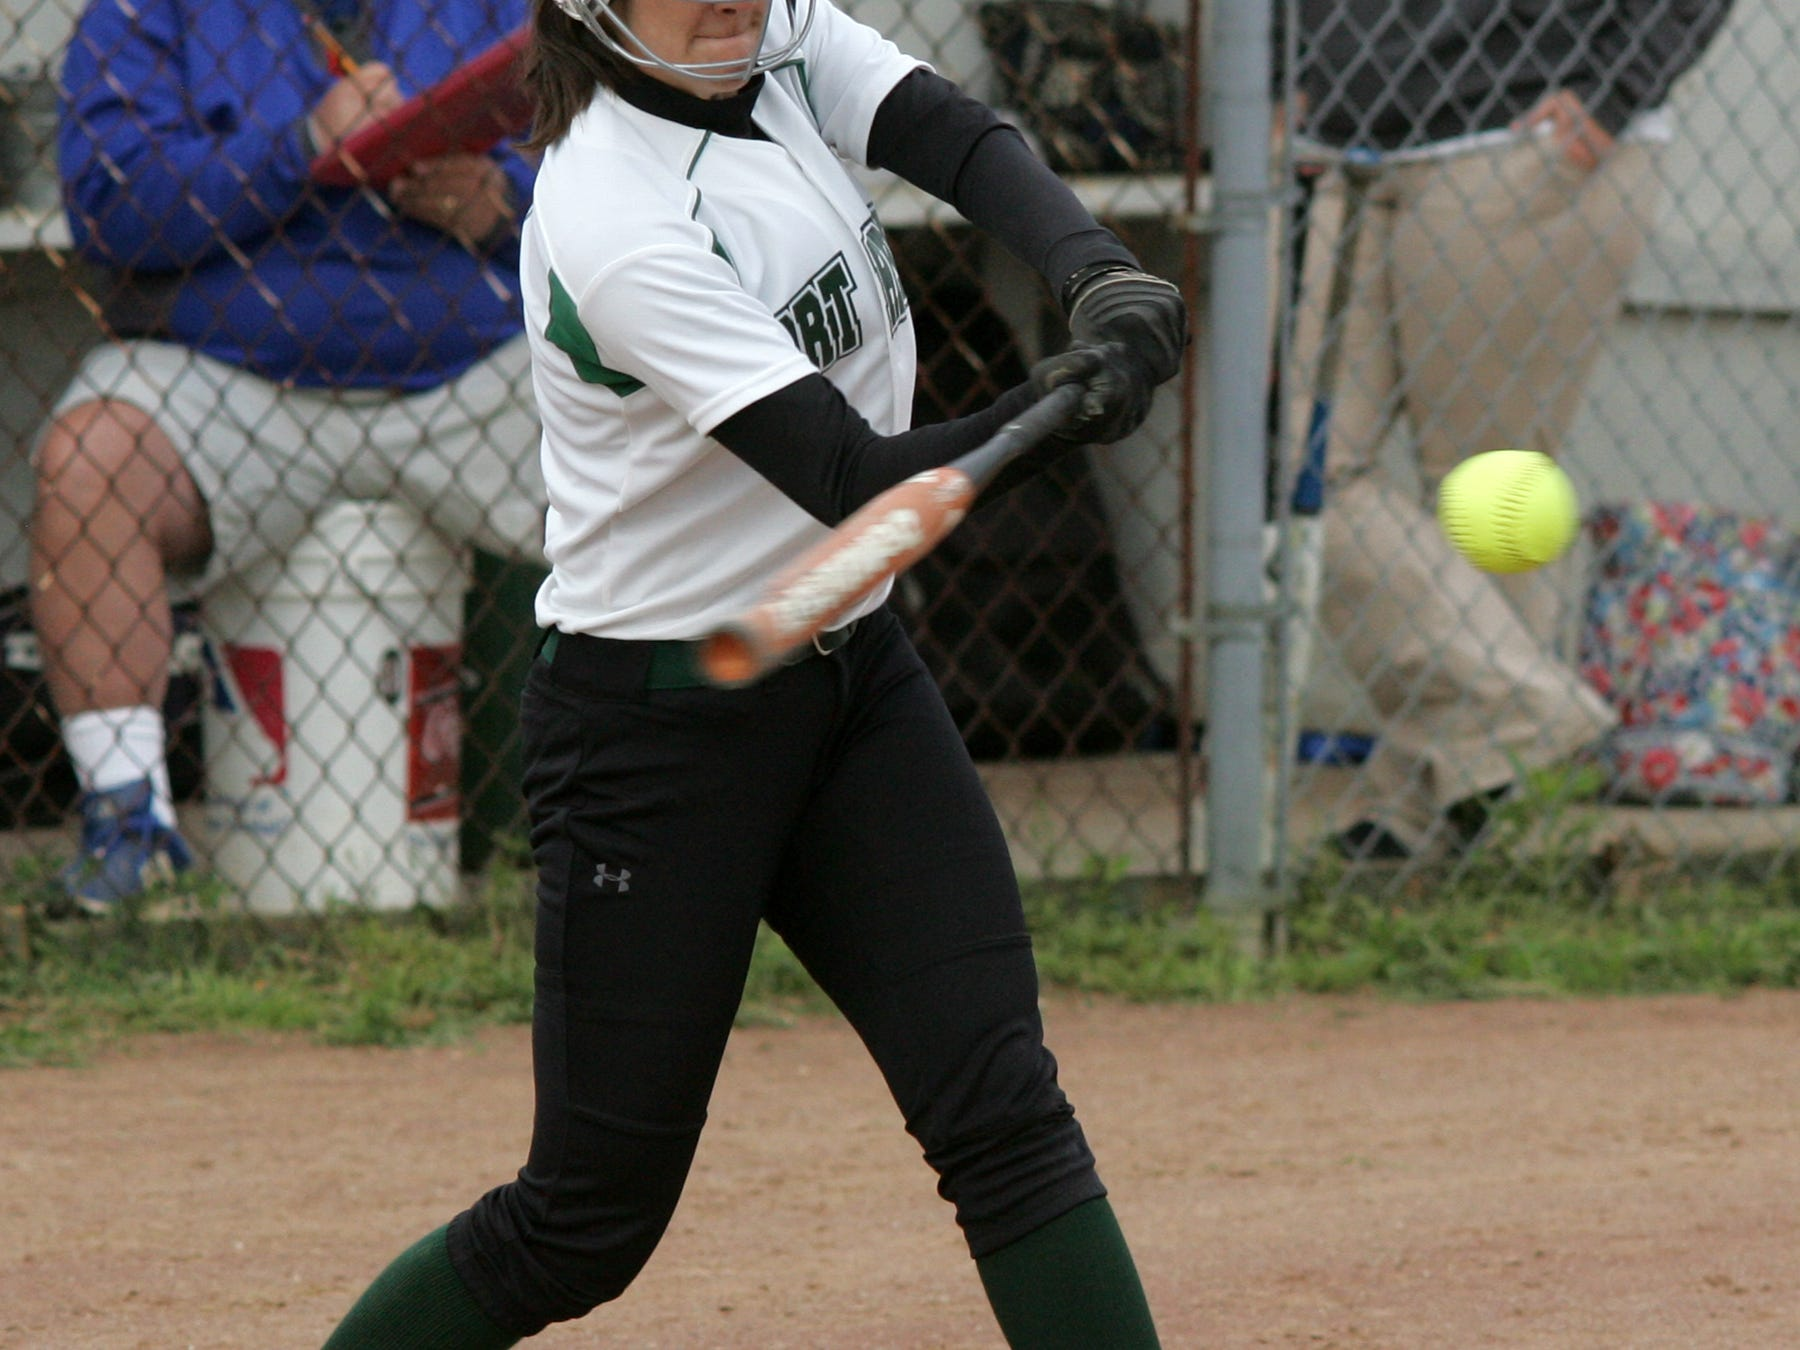 Northridge's Mikaela Pankuch hits a home run Thursday during the Vikings' 5-2 victory against Highland in a Division III second-round game.